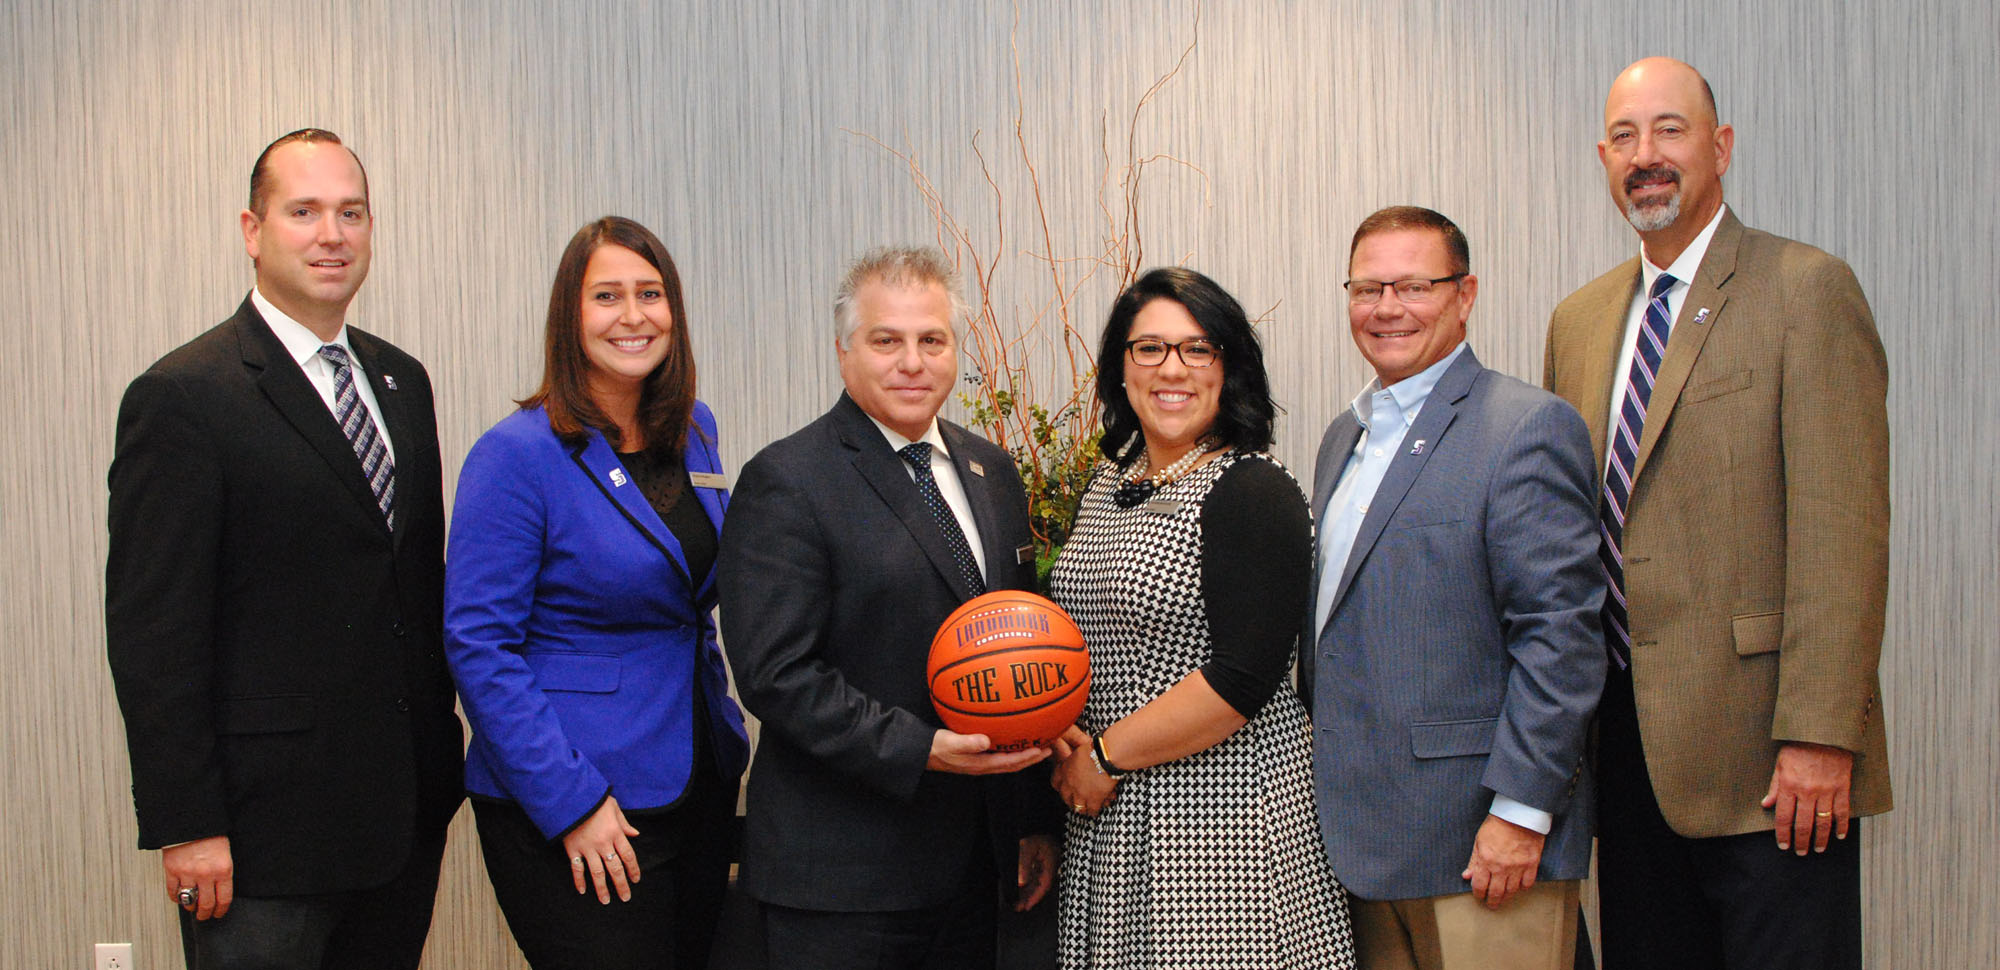 Representatives from University of Scranton Athletics met with representatives from the Hilton Scranton and Conference Center to discuss plans for a pair of upcoming basketball tournaments. From left, Trevor Woodruff, women's basketball head coach; Victoria Rogers, Hilton Scranton director of sales and marketing; Robert Trotta, Hilton Scranton general manager; Danielle Borkowski, Hilton Scranton sales manager; Dave Martin, director of athletics at The University of Scranton; and Carl Danzig, men's basketball head coach.